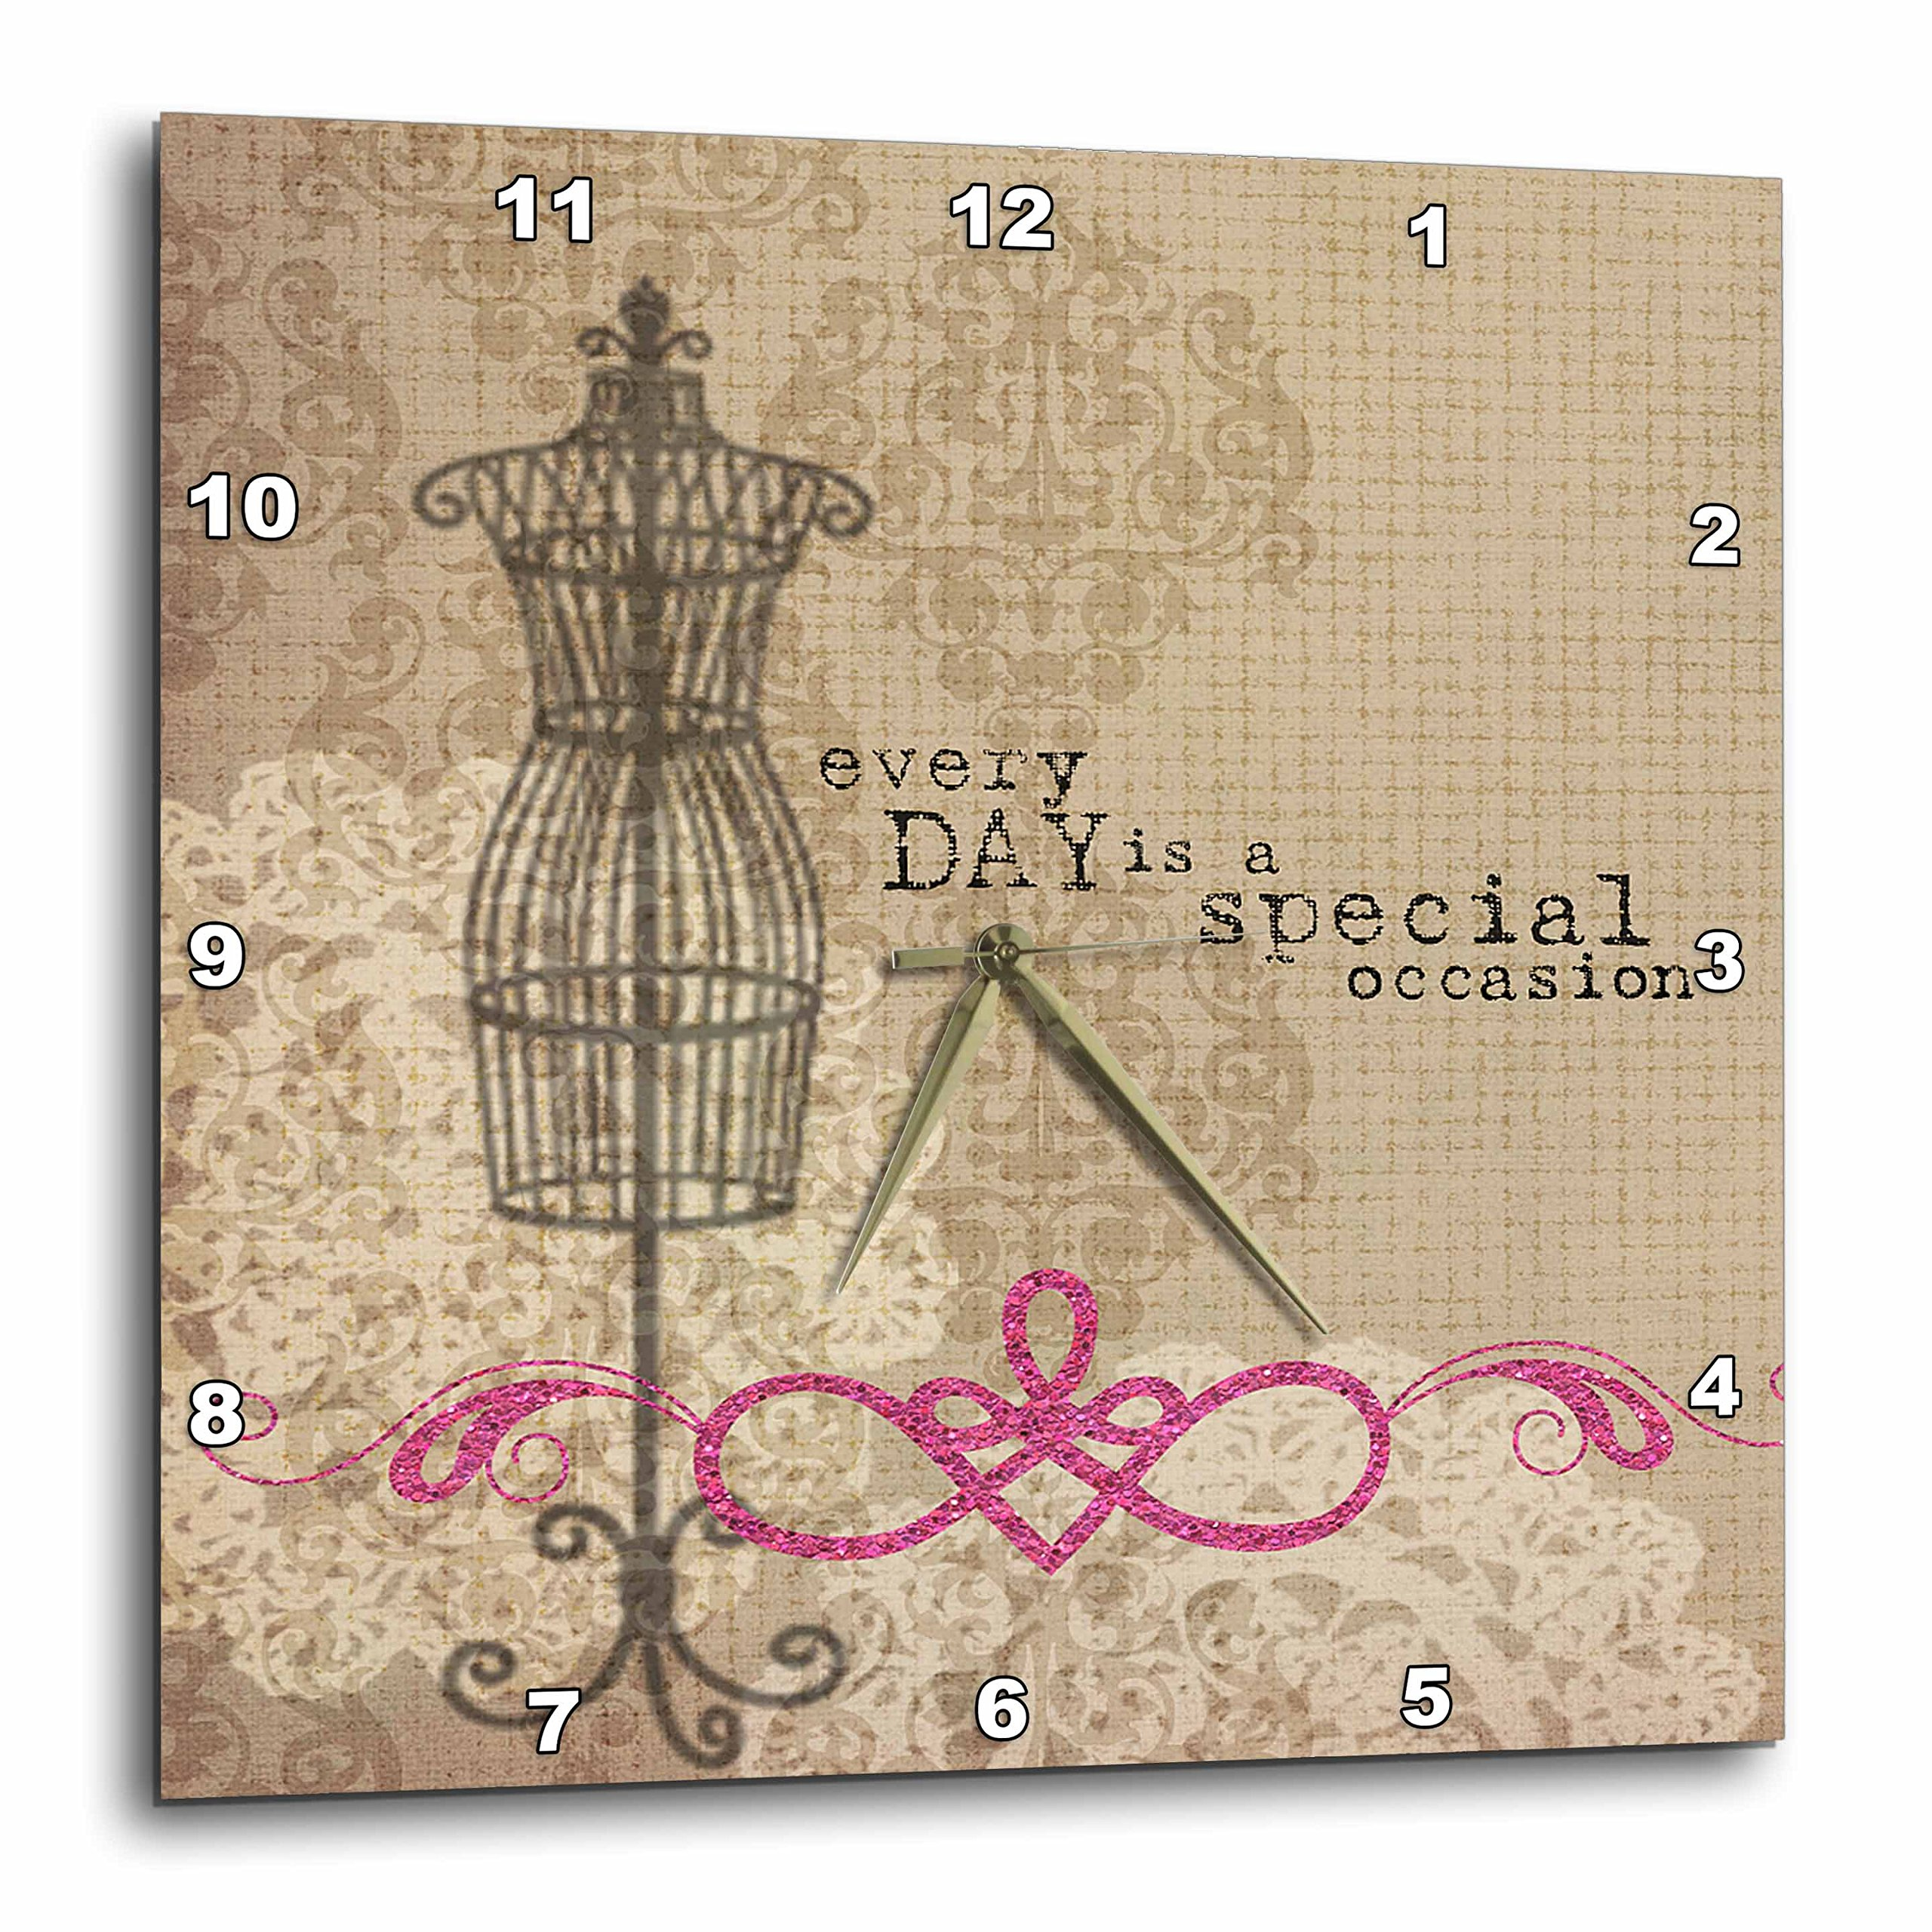 3dRose Vintage Dress Form with Every Day is A Special Occasion - Wall Clock, 15 by 15-Inch (DPP_213957_3)